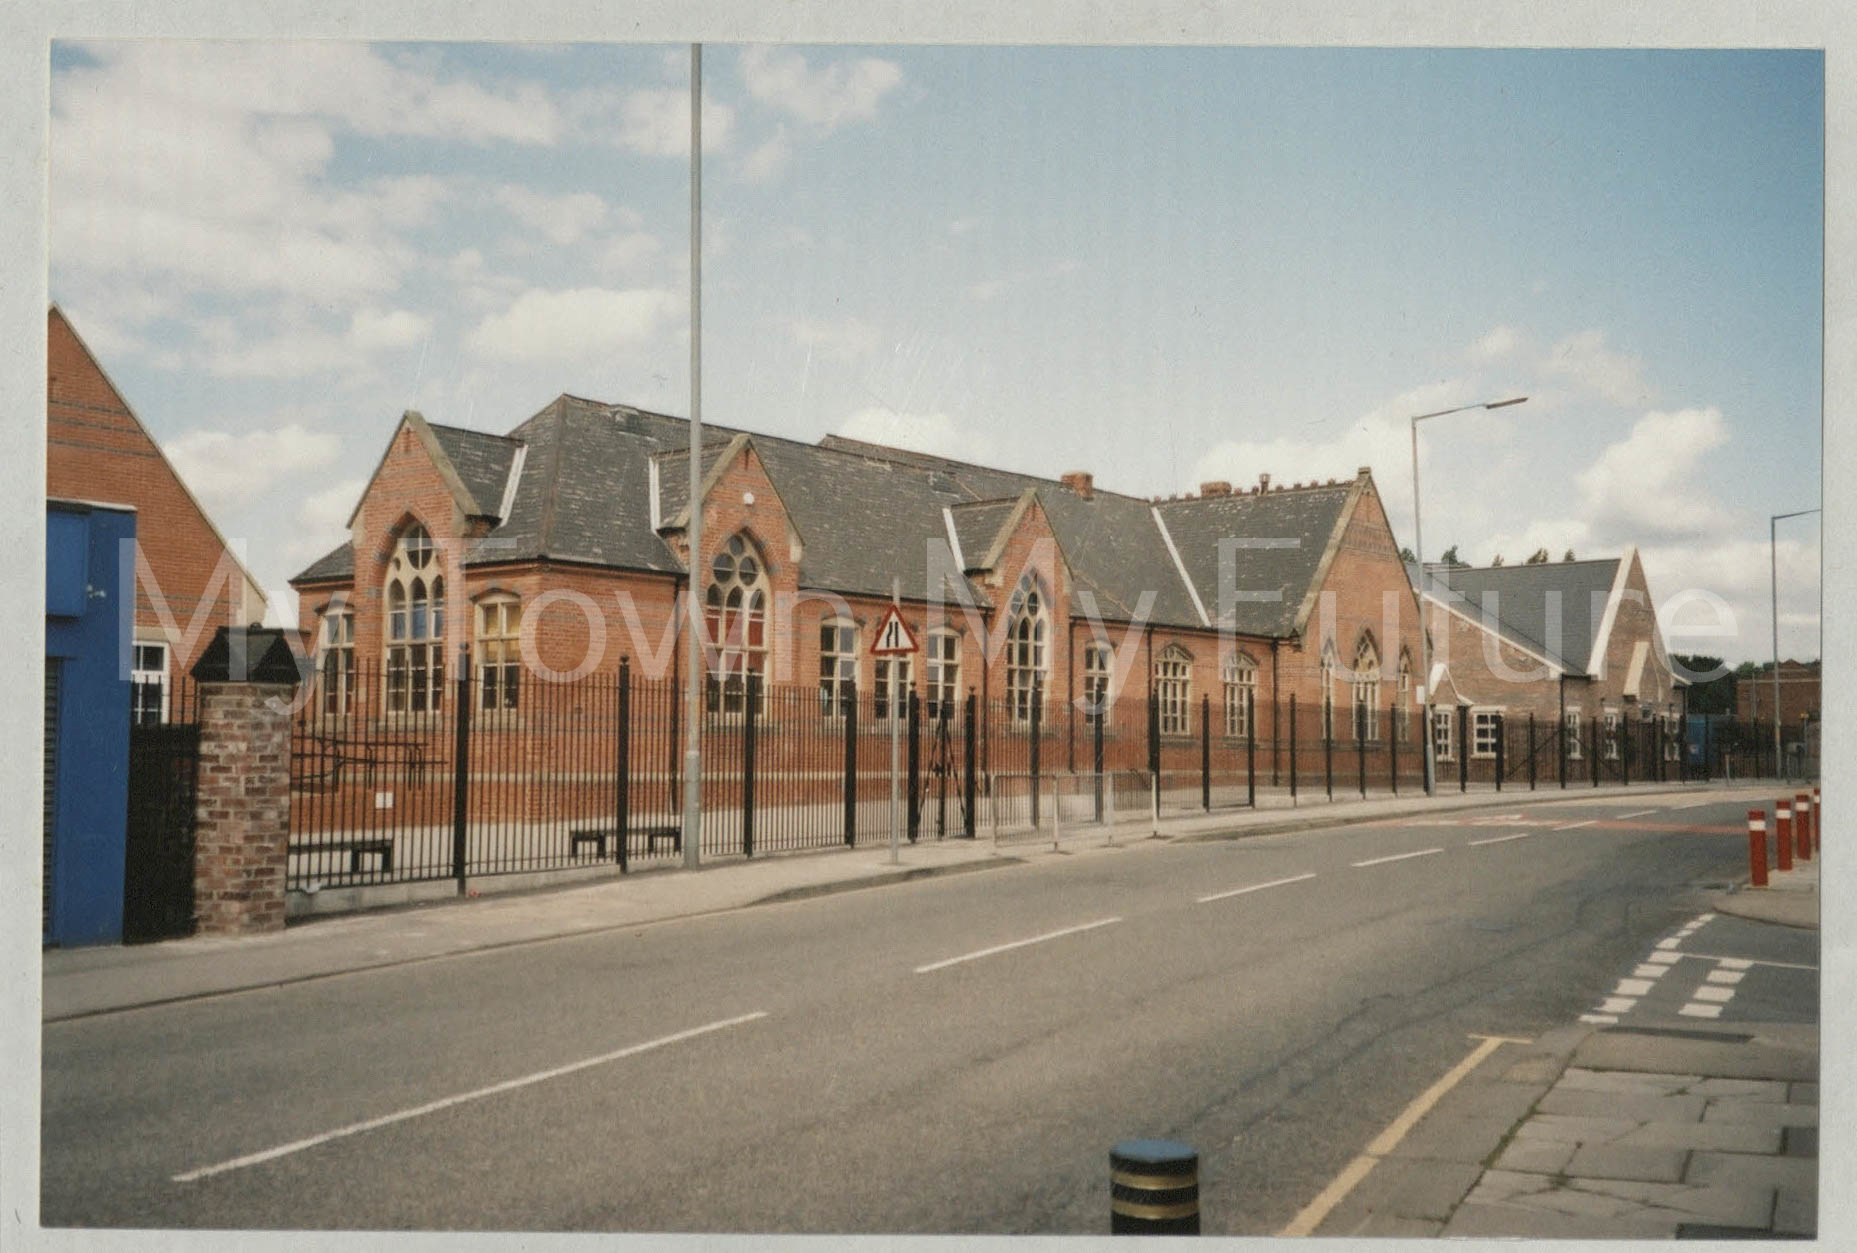 Linthorpe School (2004)